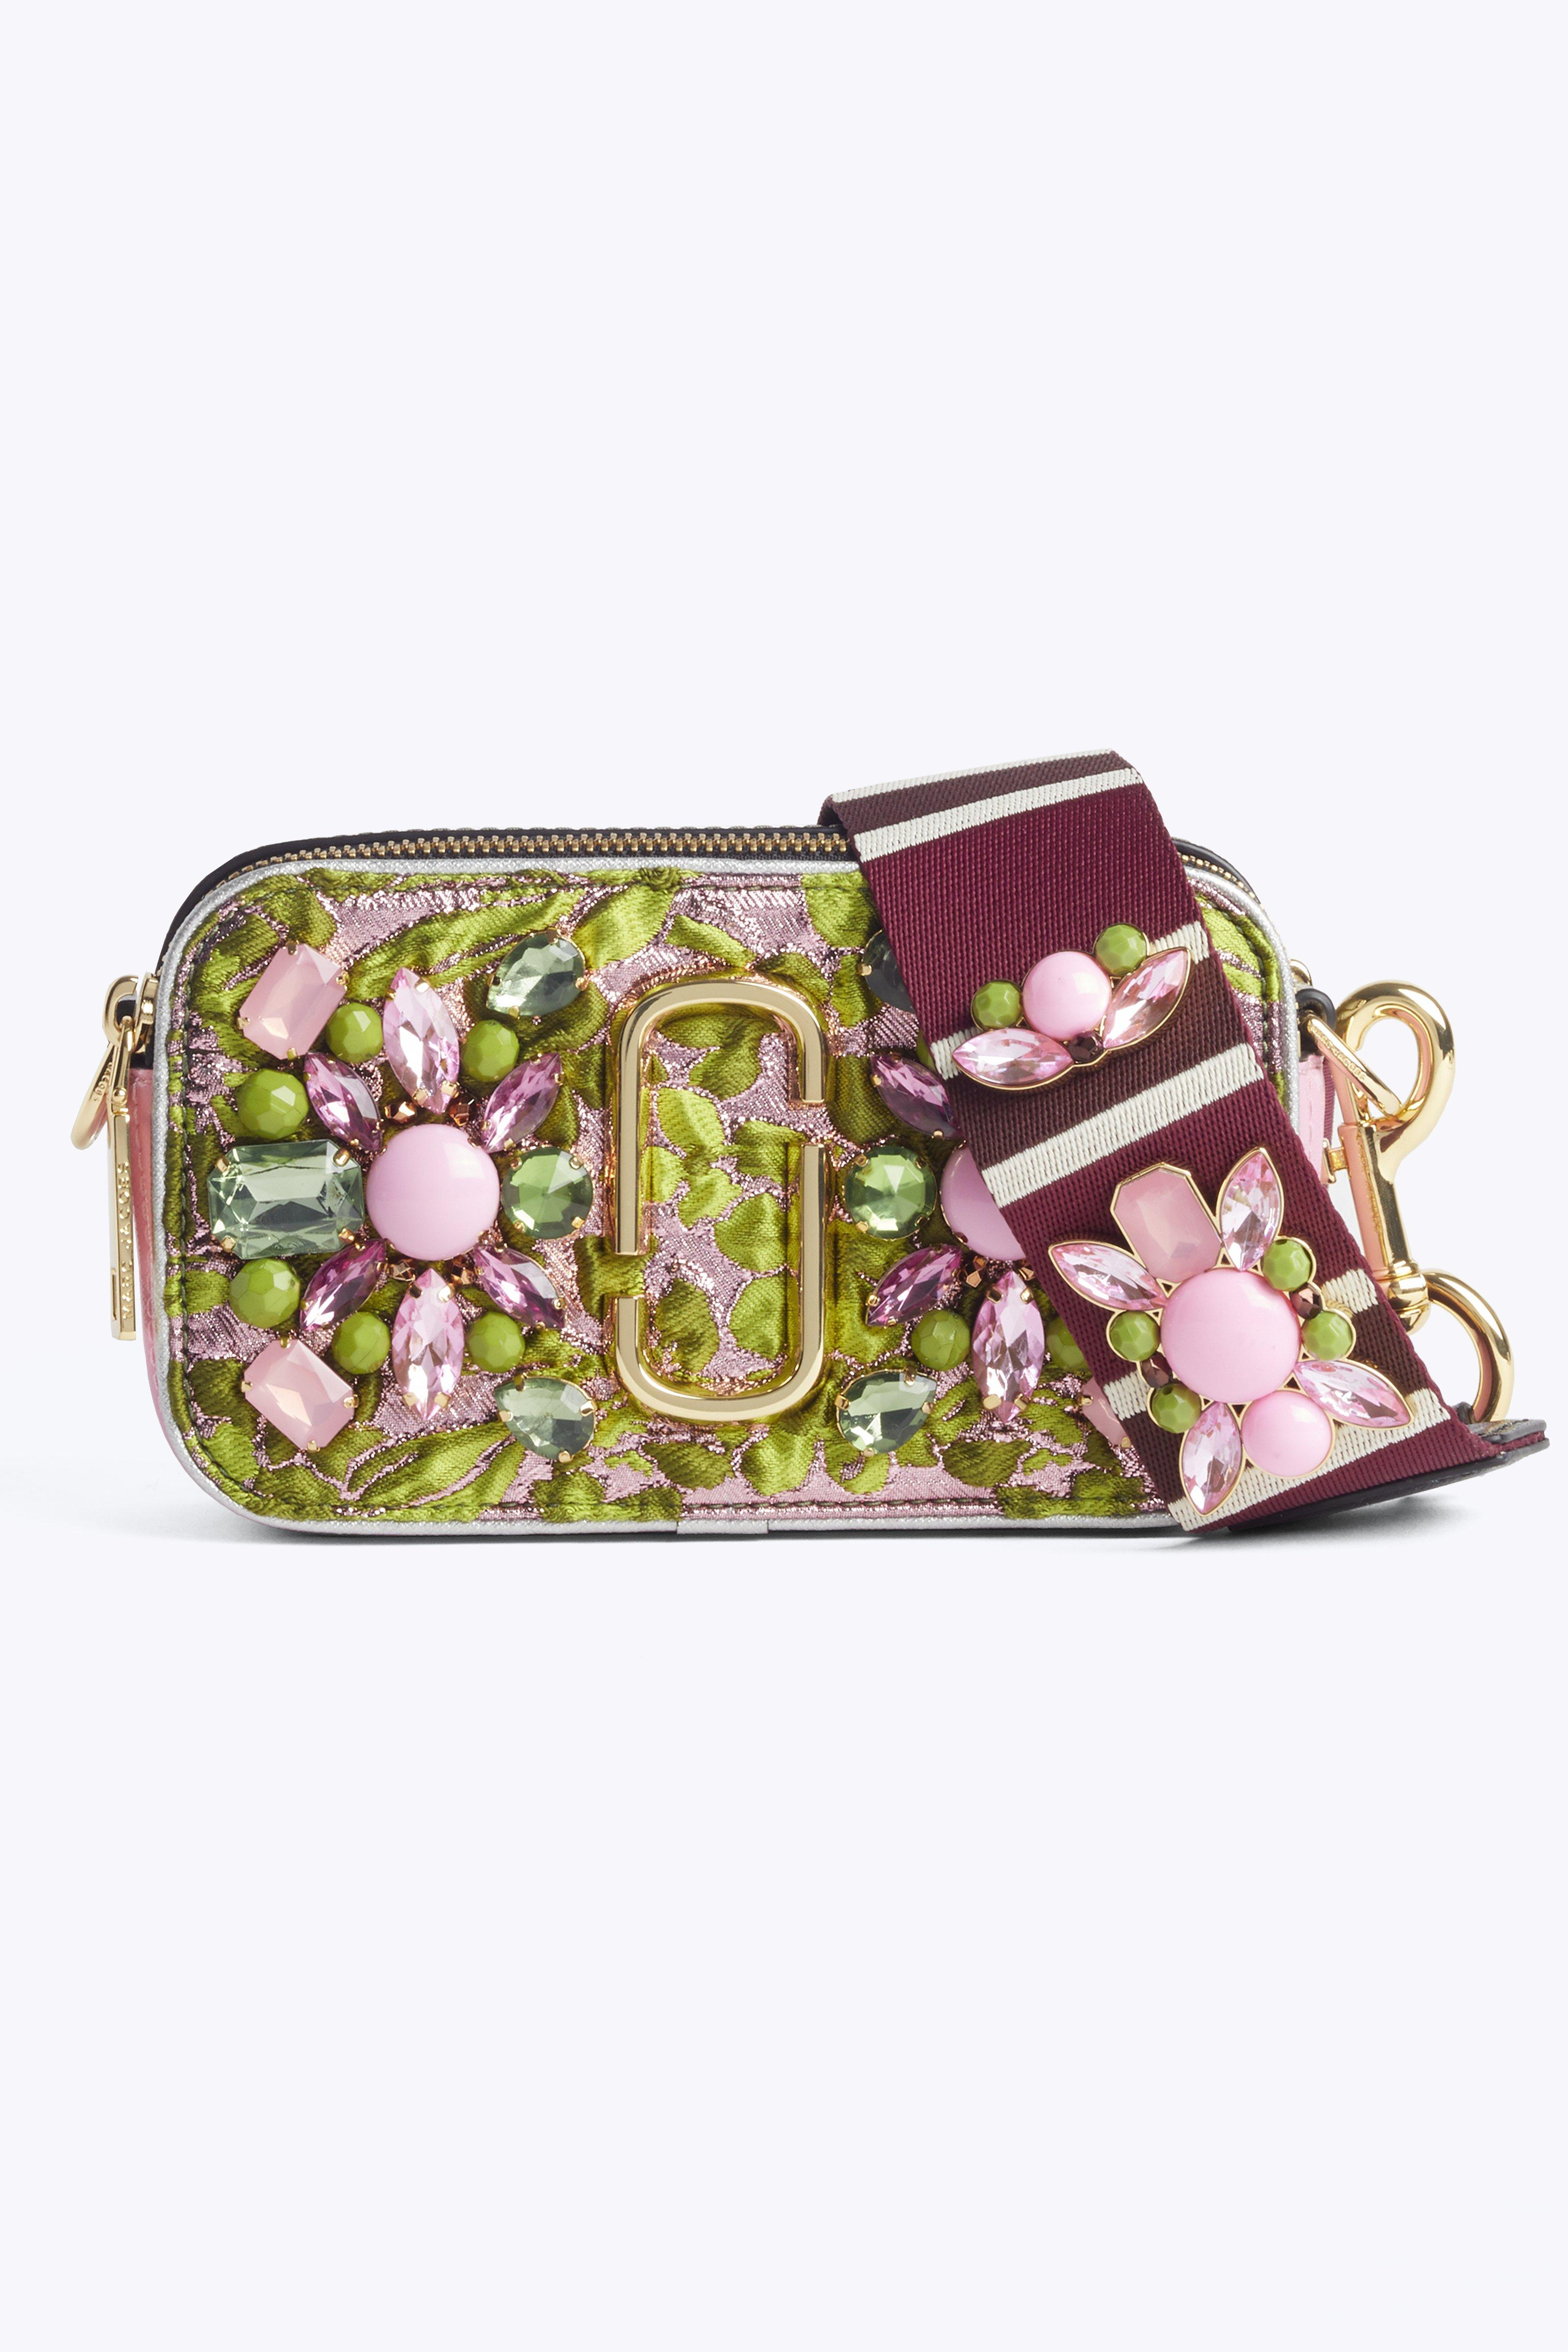 Marc Jacobs  Snapshot Floral Brocade Small Camera Bag